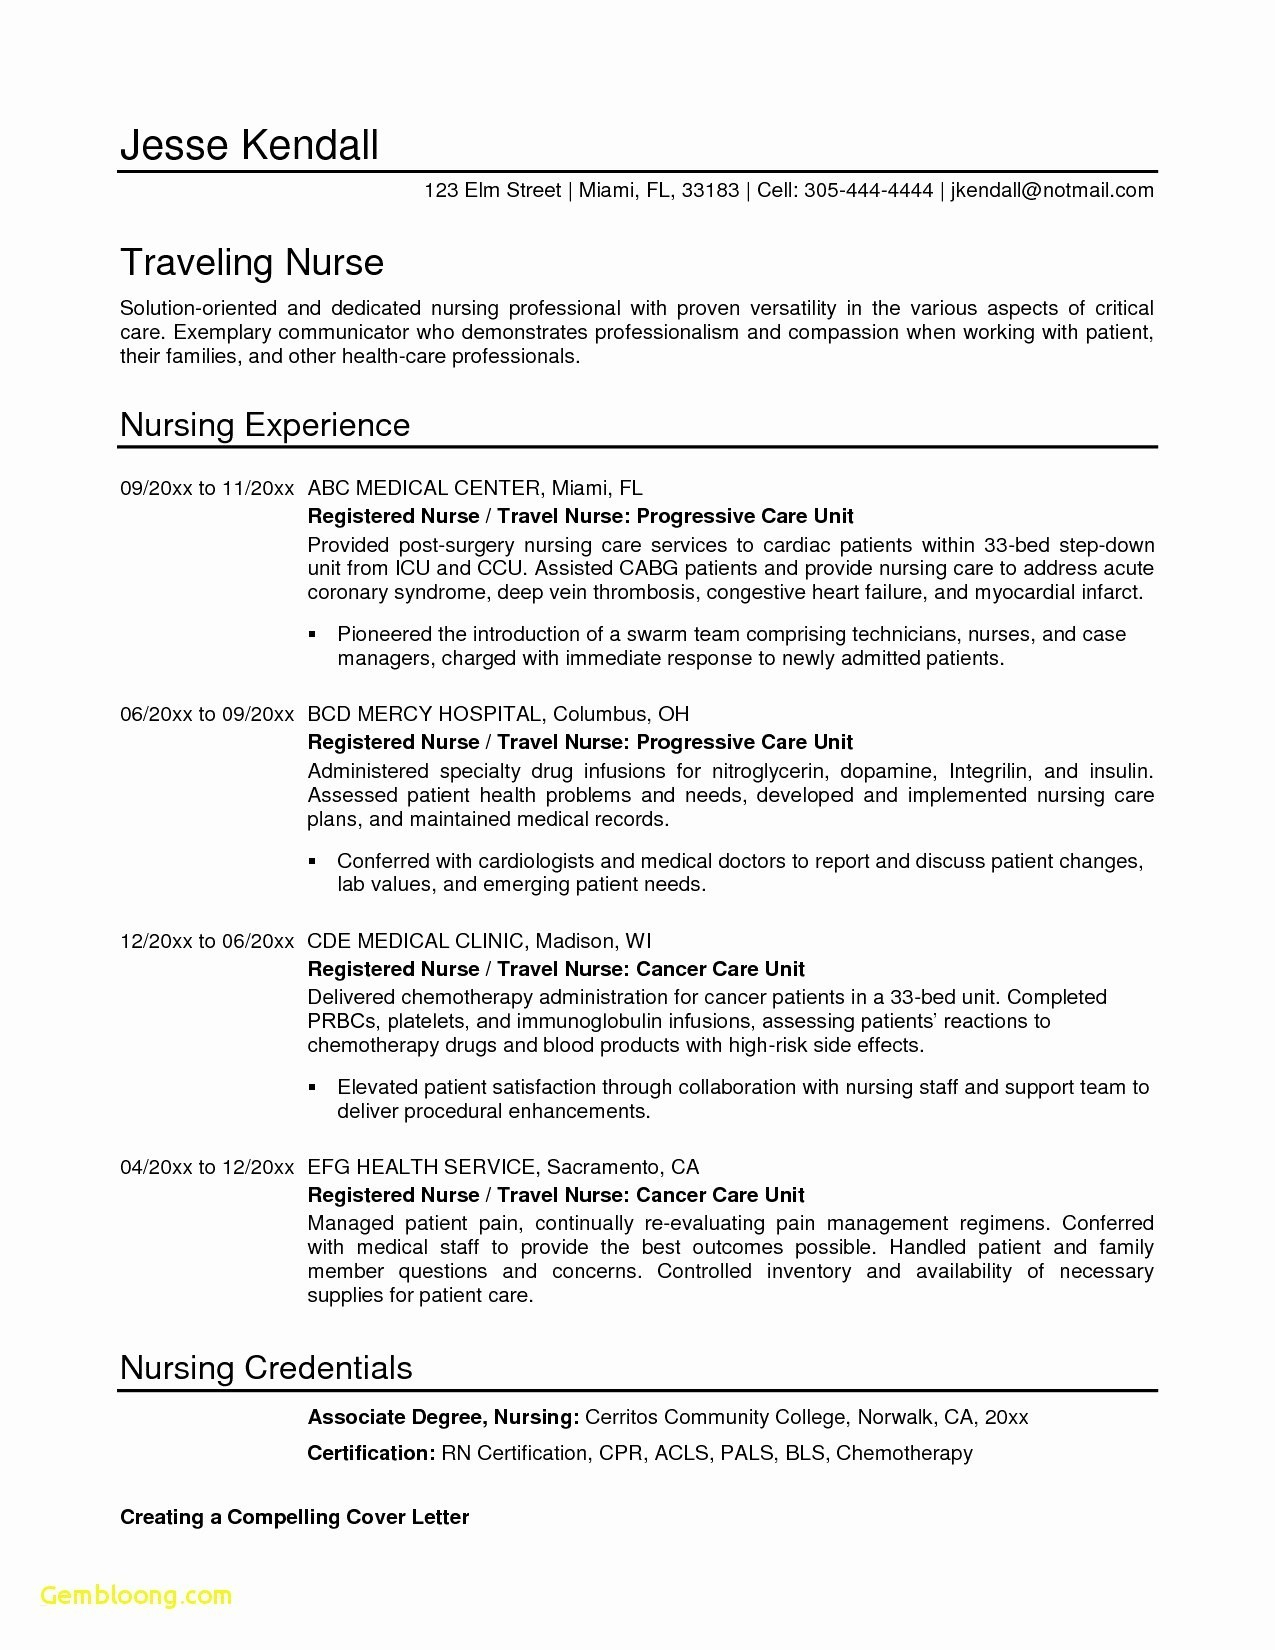 Free Cover Letter Template Microsoft Word - Free Printable Resume Template Free Printable Resume Templates